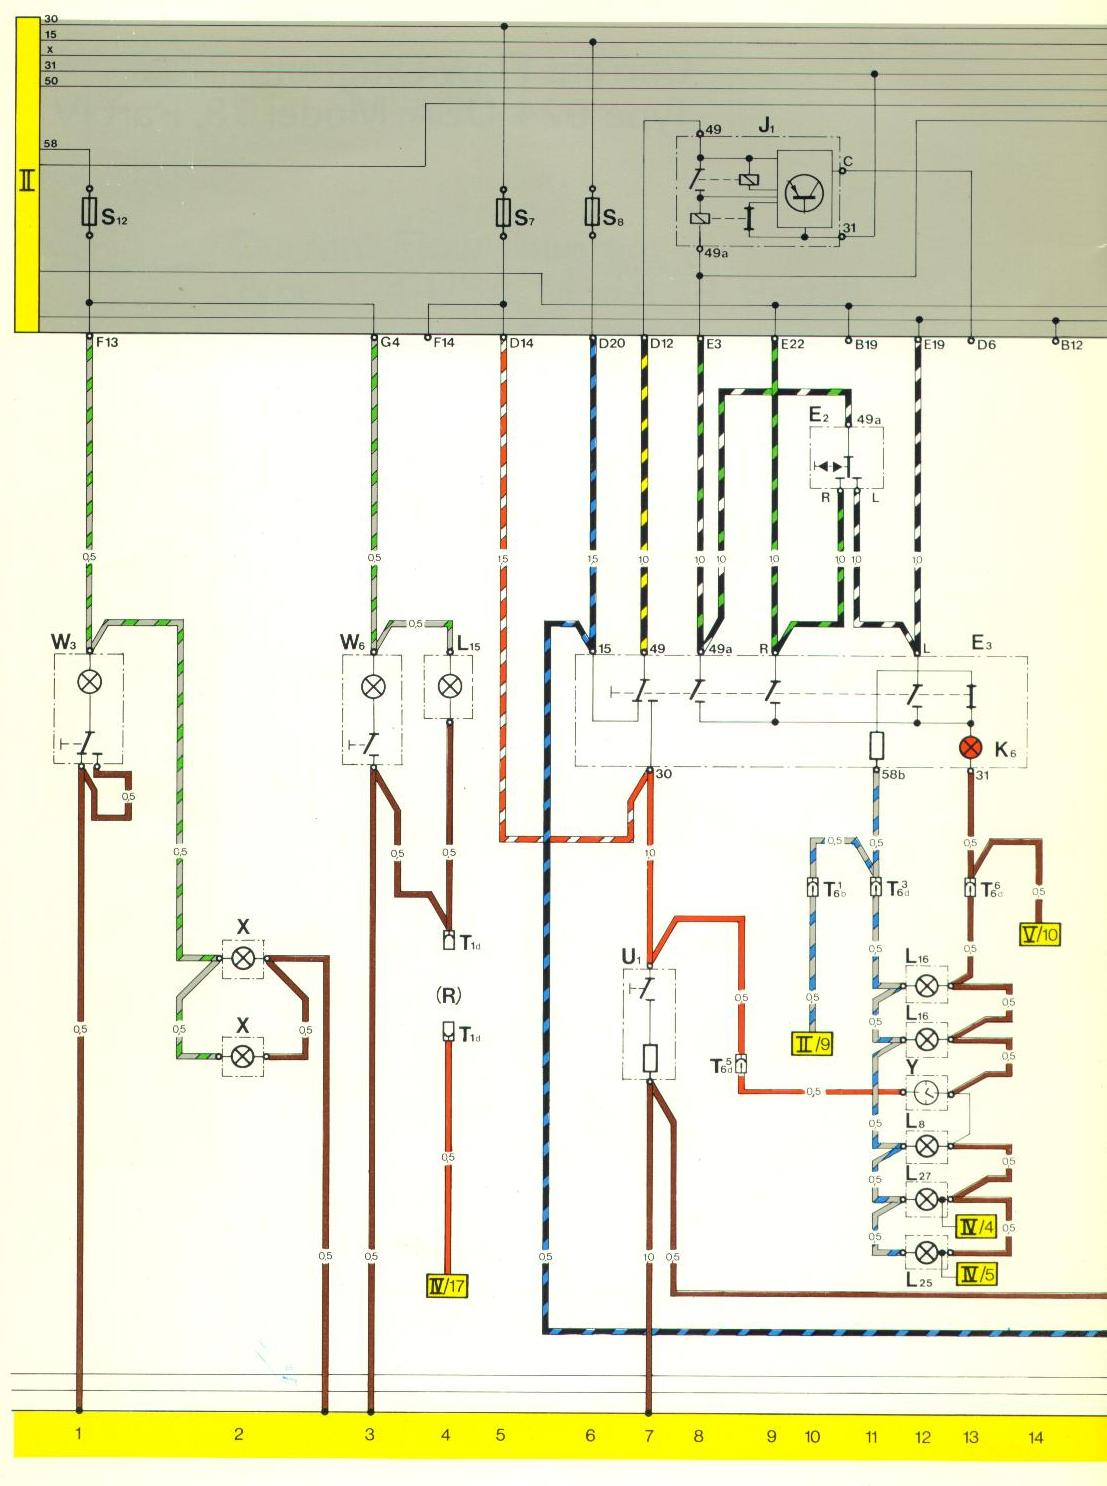 Porsche 944 Power Window Wiring Diagram Just Another Location Fuse 2002 Pontiac Aztek Instrument Gauges Pelican Parts 924 Electrical Diagrams Rh Pelicanparts Com 1986 Engine Compartment